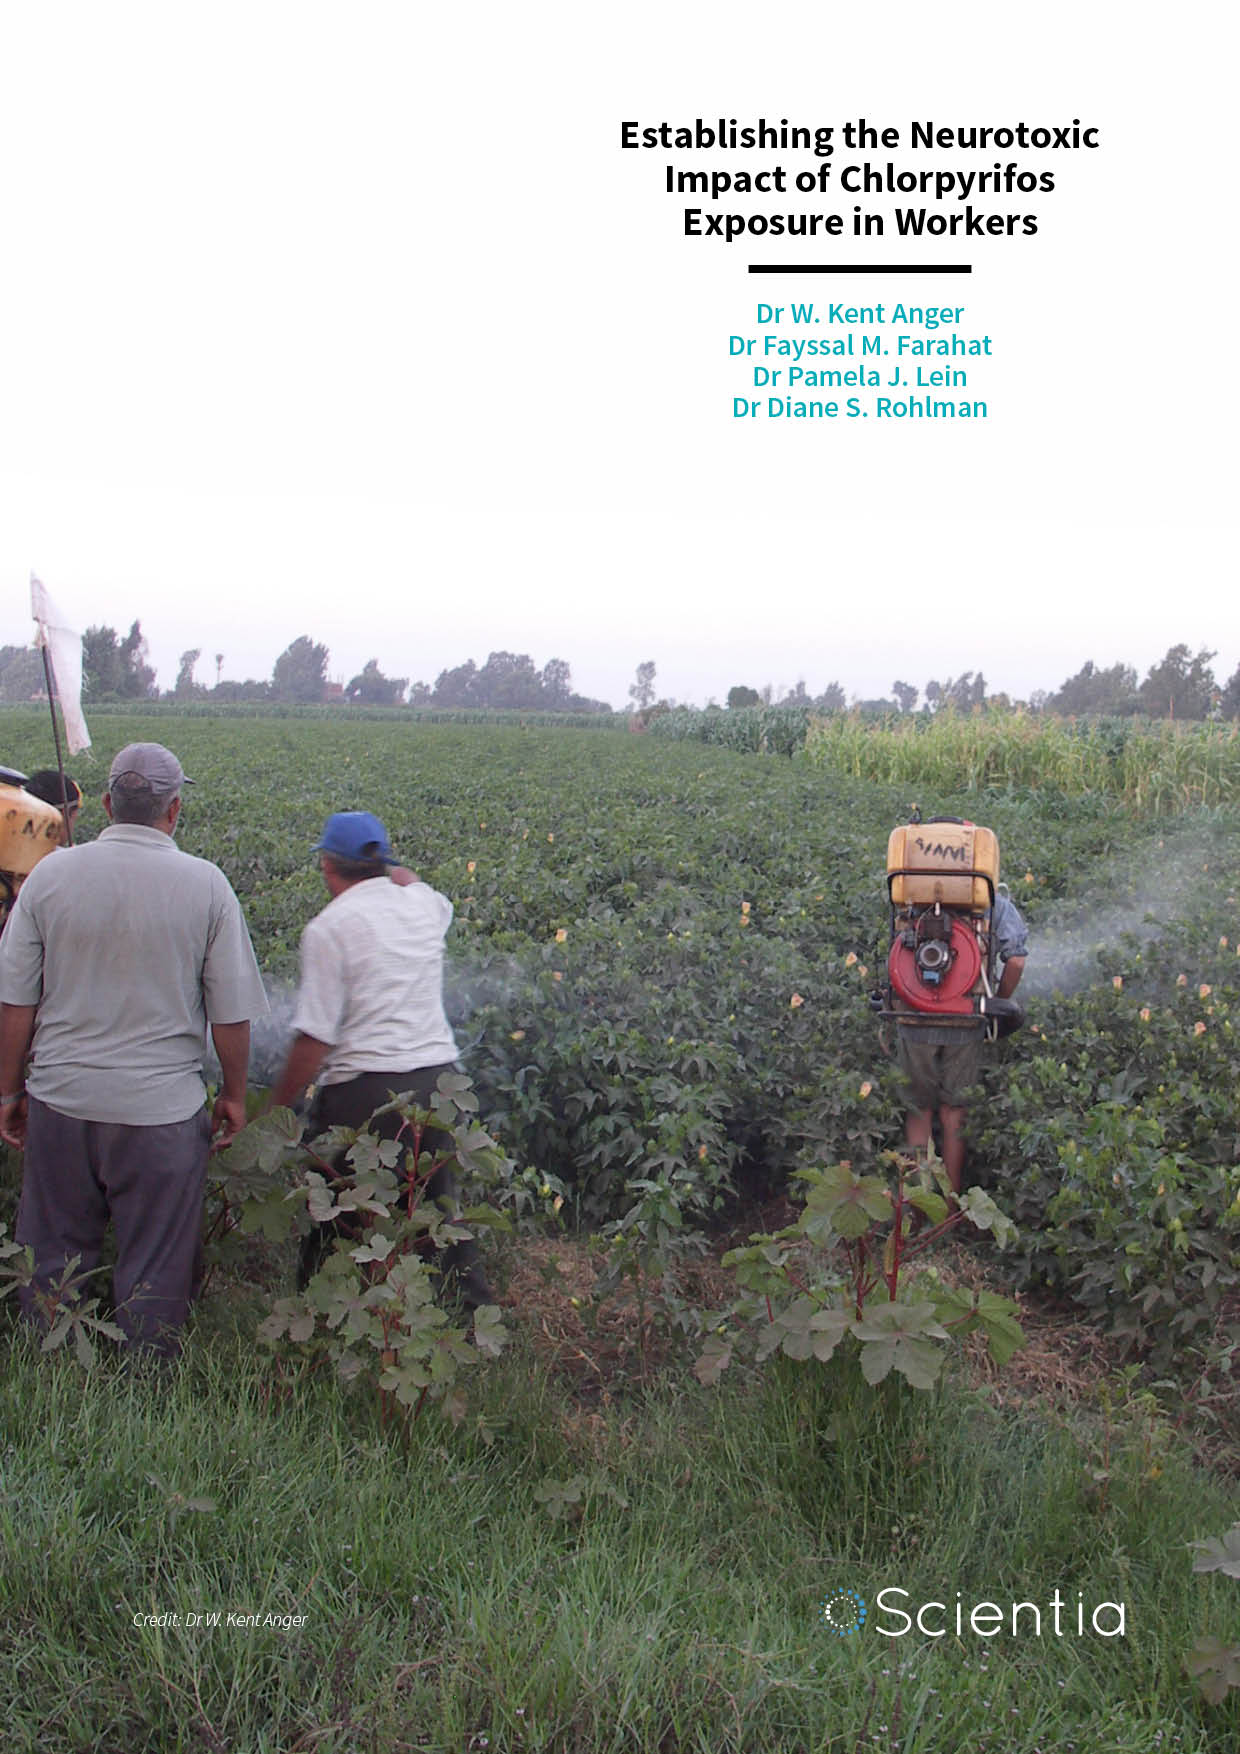 Dr W. Kent Anger | Dr Fayssal M. Farahat | Dr Pamela J. Lein | Dr Diane S. Rohlman – Establishing the Neurotoxic Impact of Chlorpyrifos Exposure in Workers